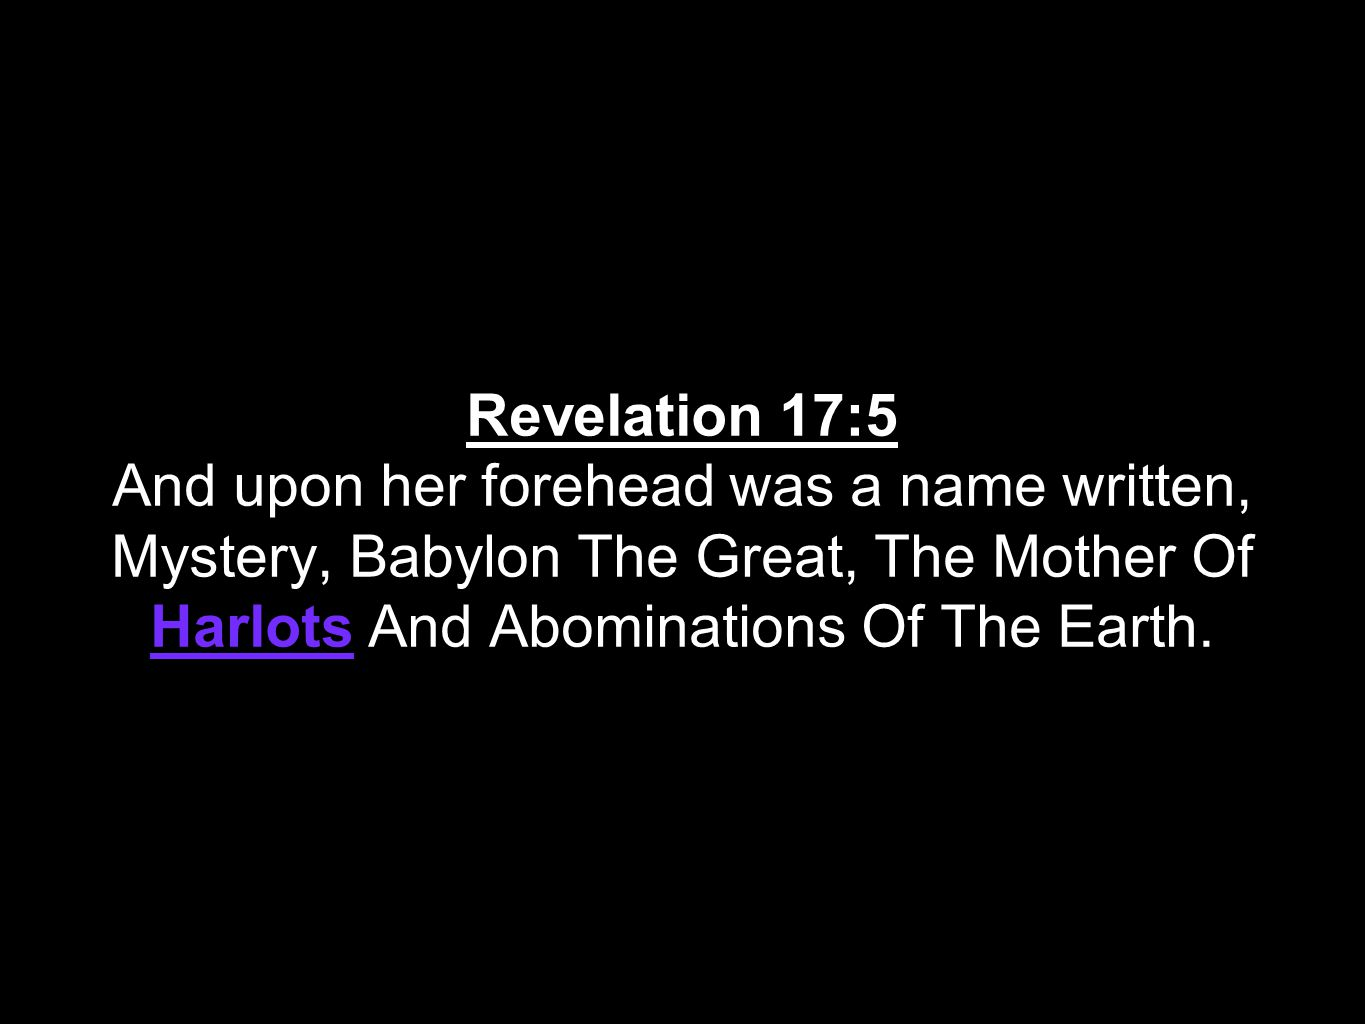 Revelation 17:5 And upon her forehead was a name written, Mystery, Babylon The Great, The Mother Of Harlots And Abominations Of The Earth.